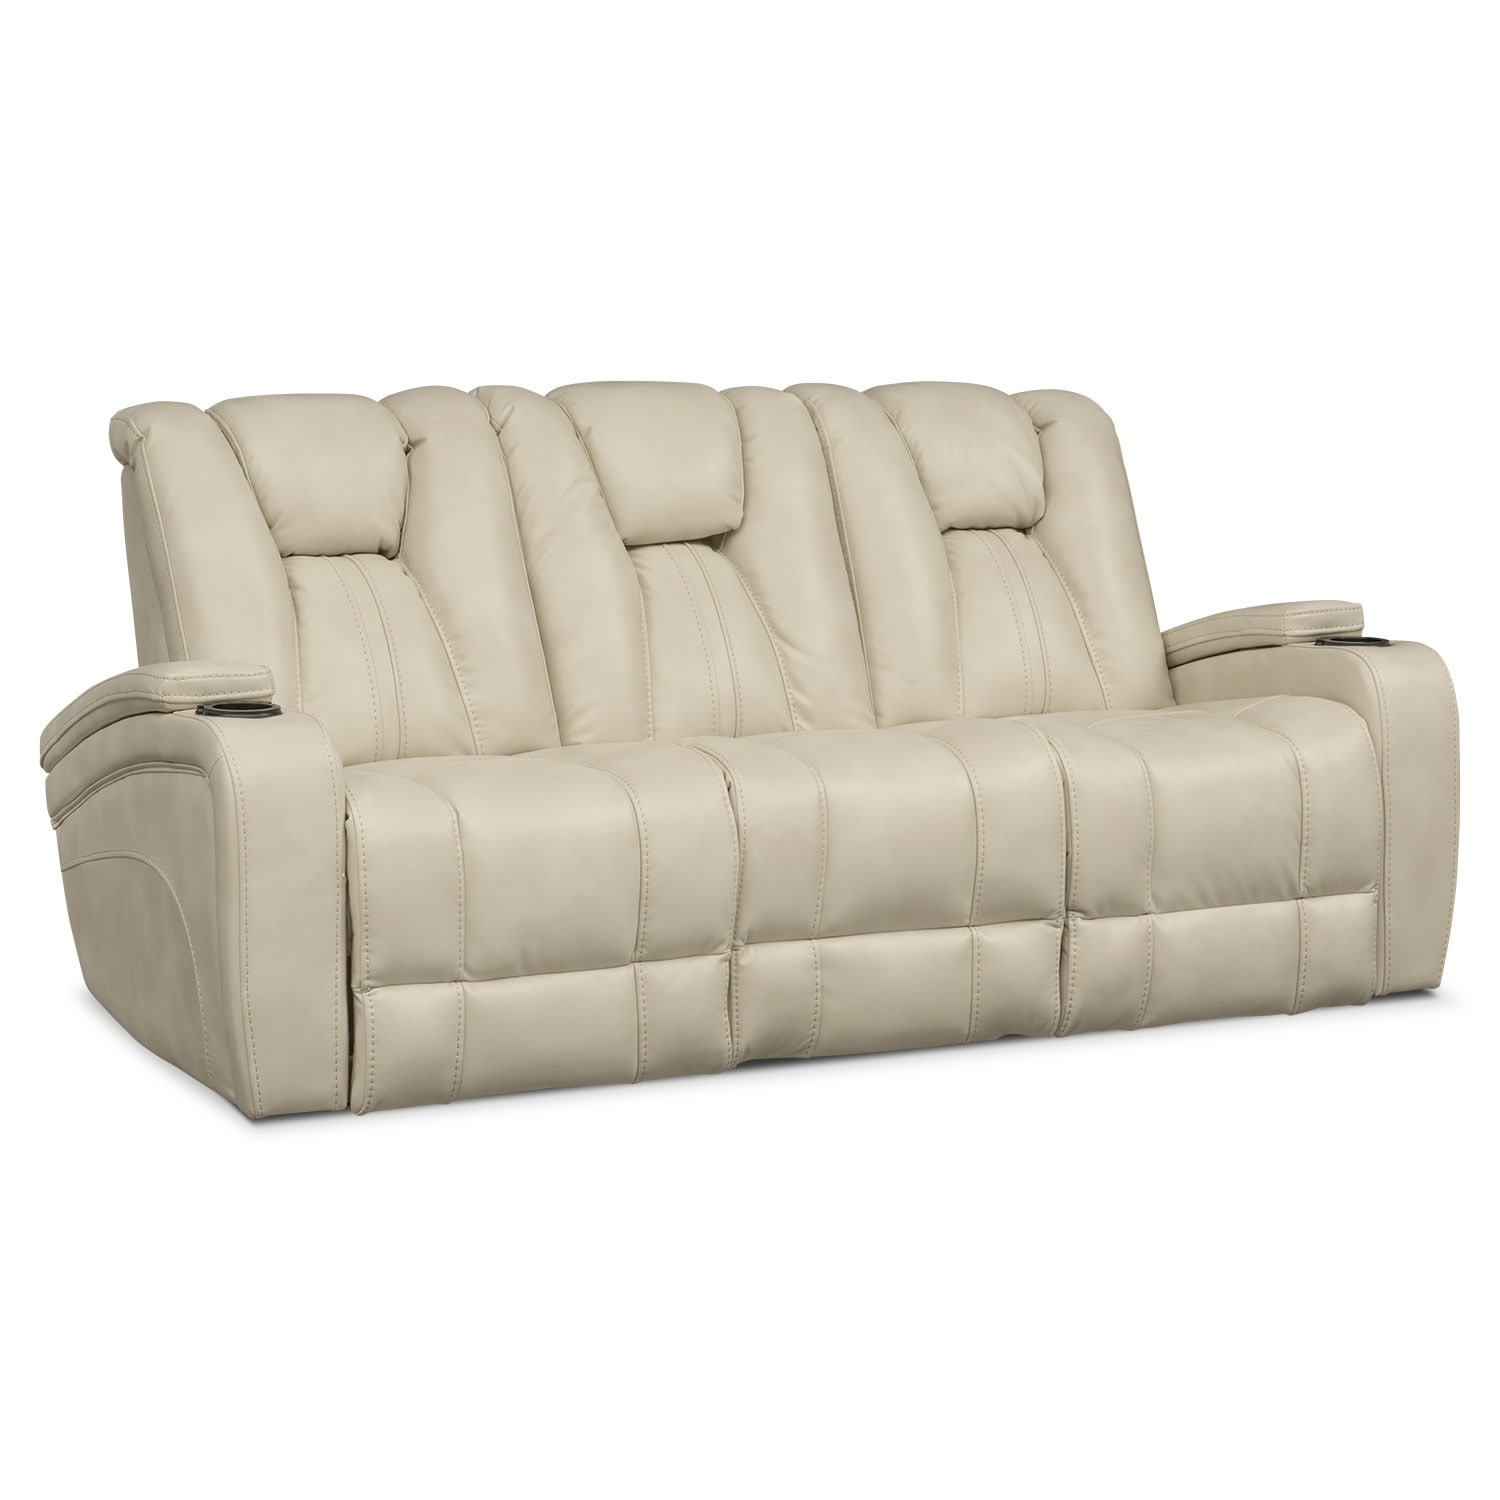 Pulsar Dual Power Reclining Sofa Cream Value City